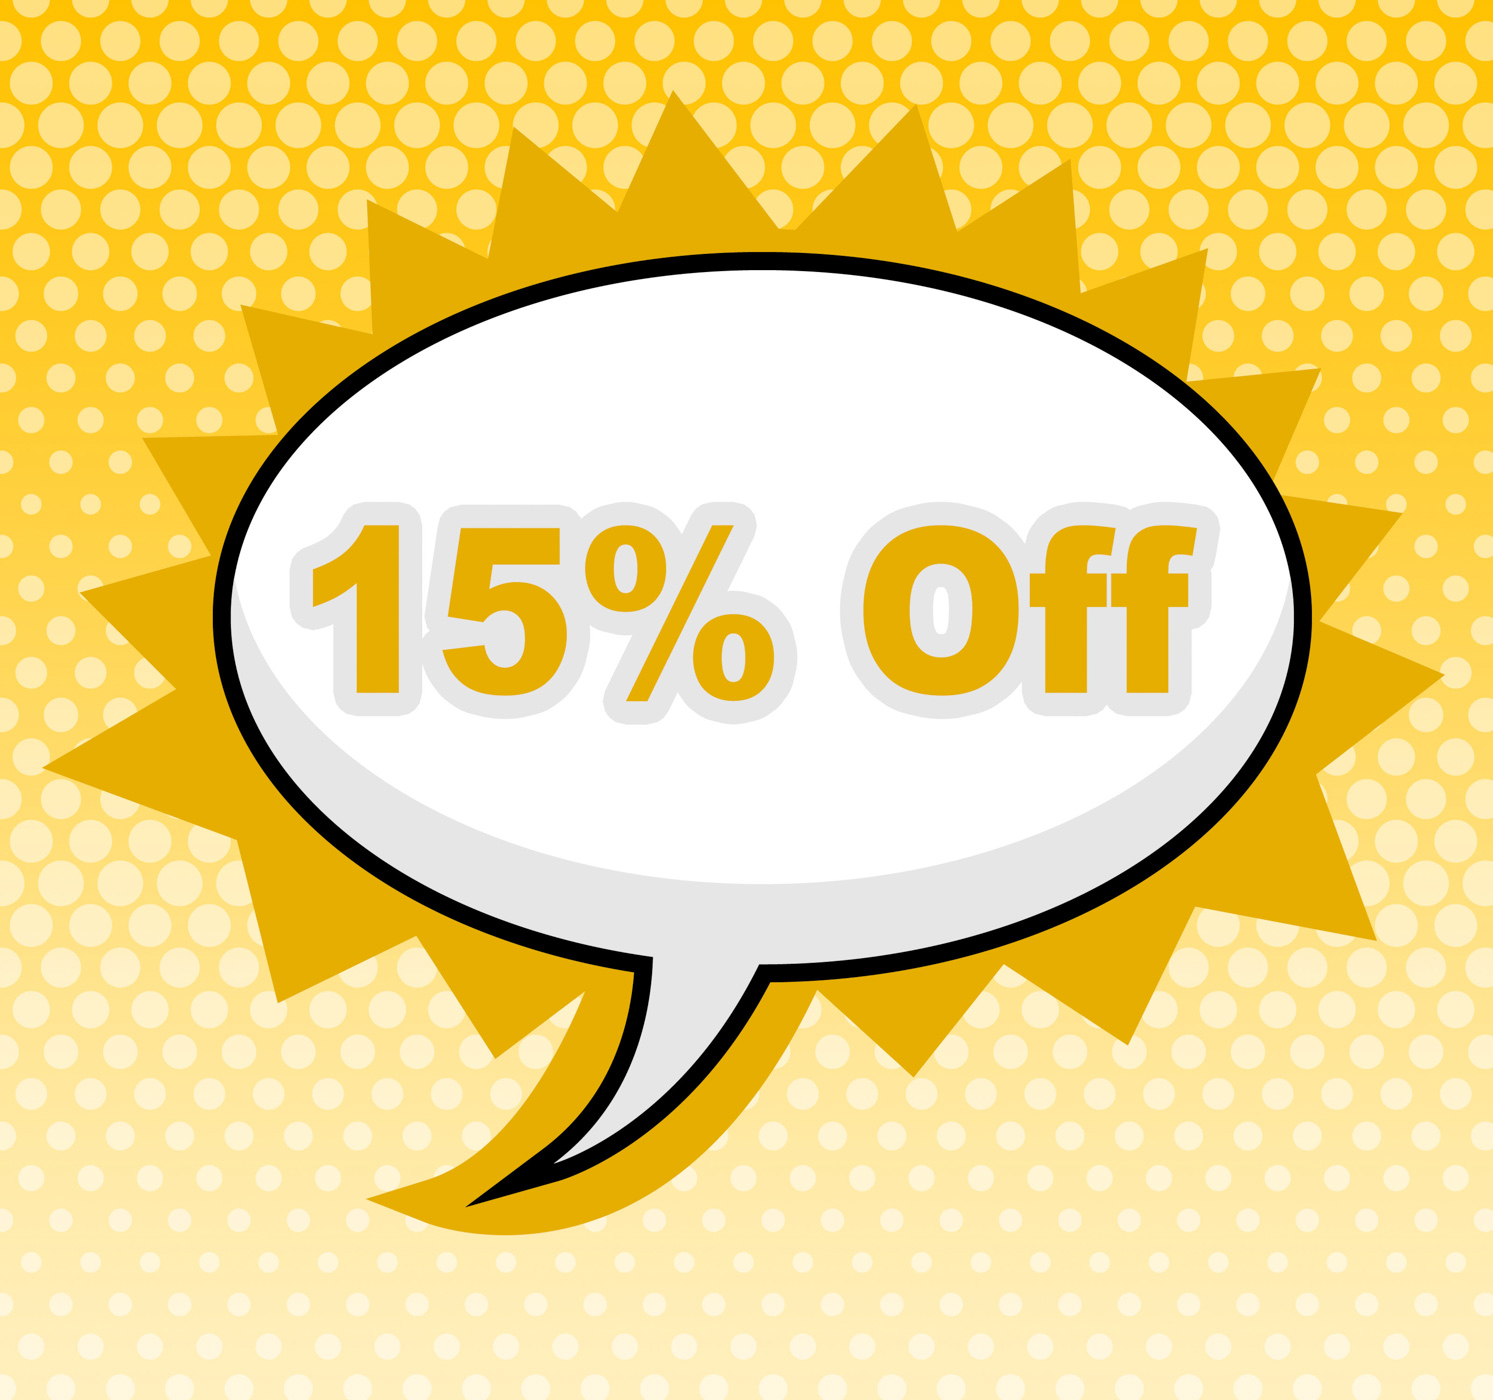 Fifteen percent off indicates sign promotion and placard photo